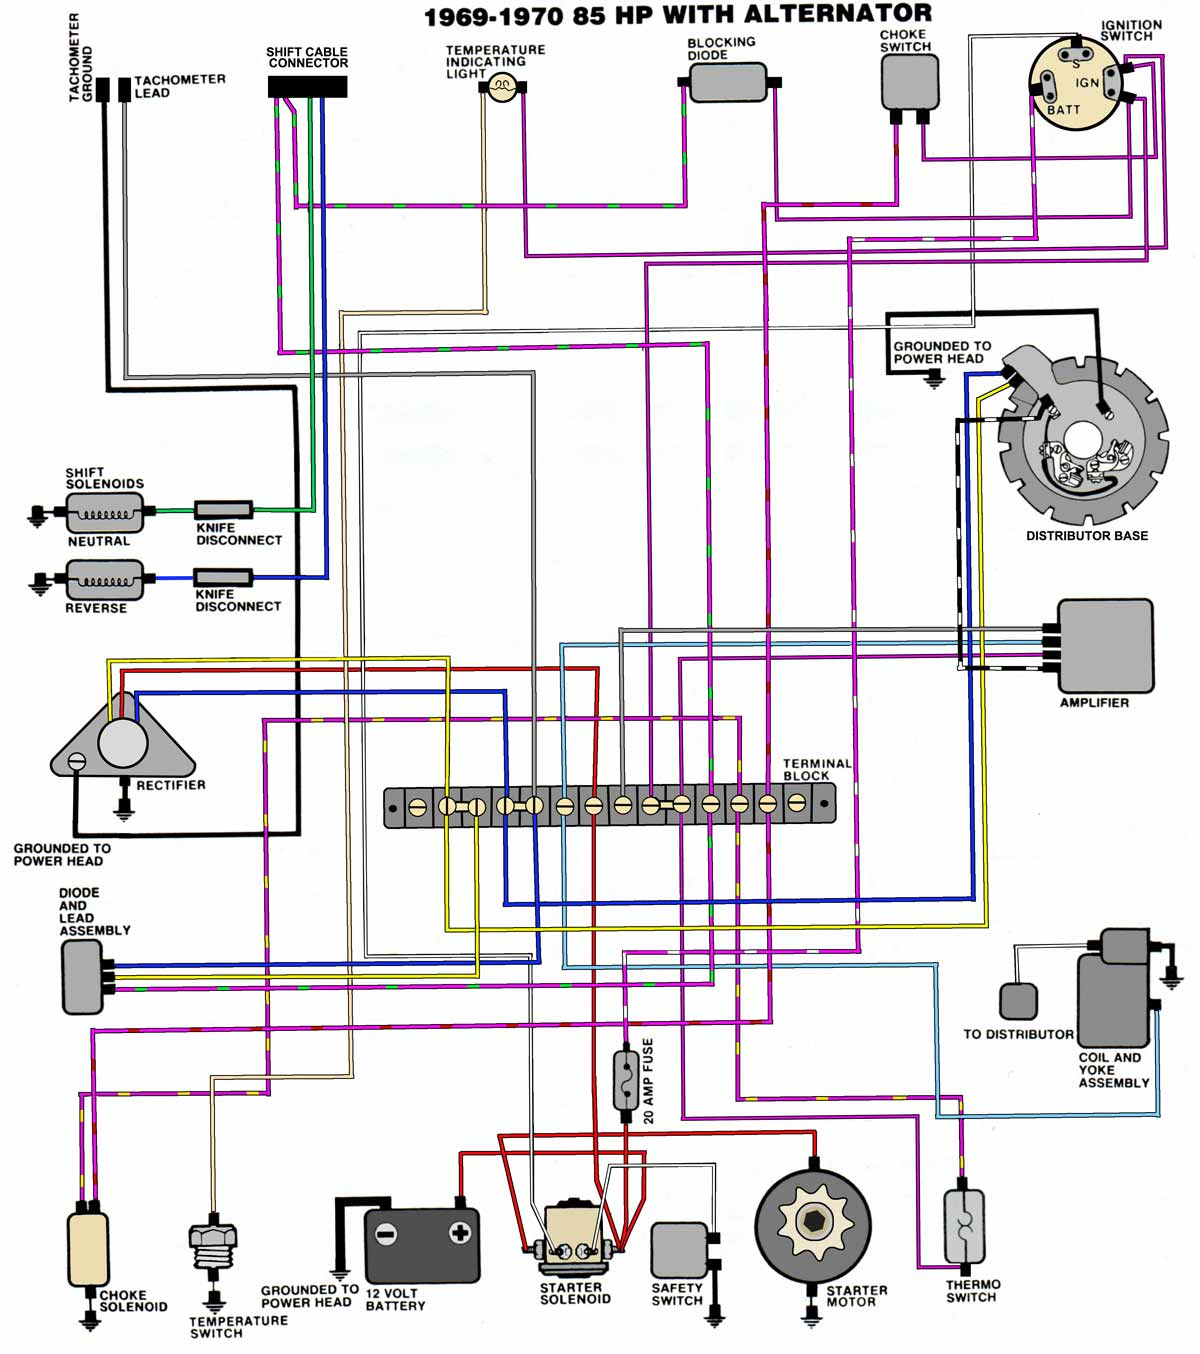 wiring diagram yamaha outboard ignition switch 2006 klr 650 1976 johnson evinrude schema diagrams tilt trim